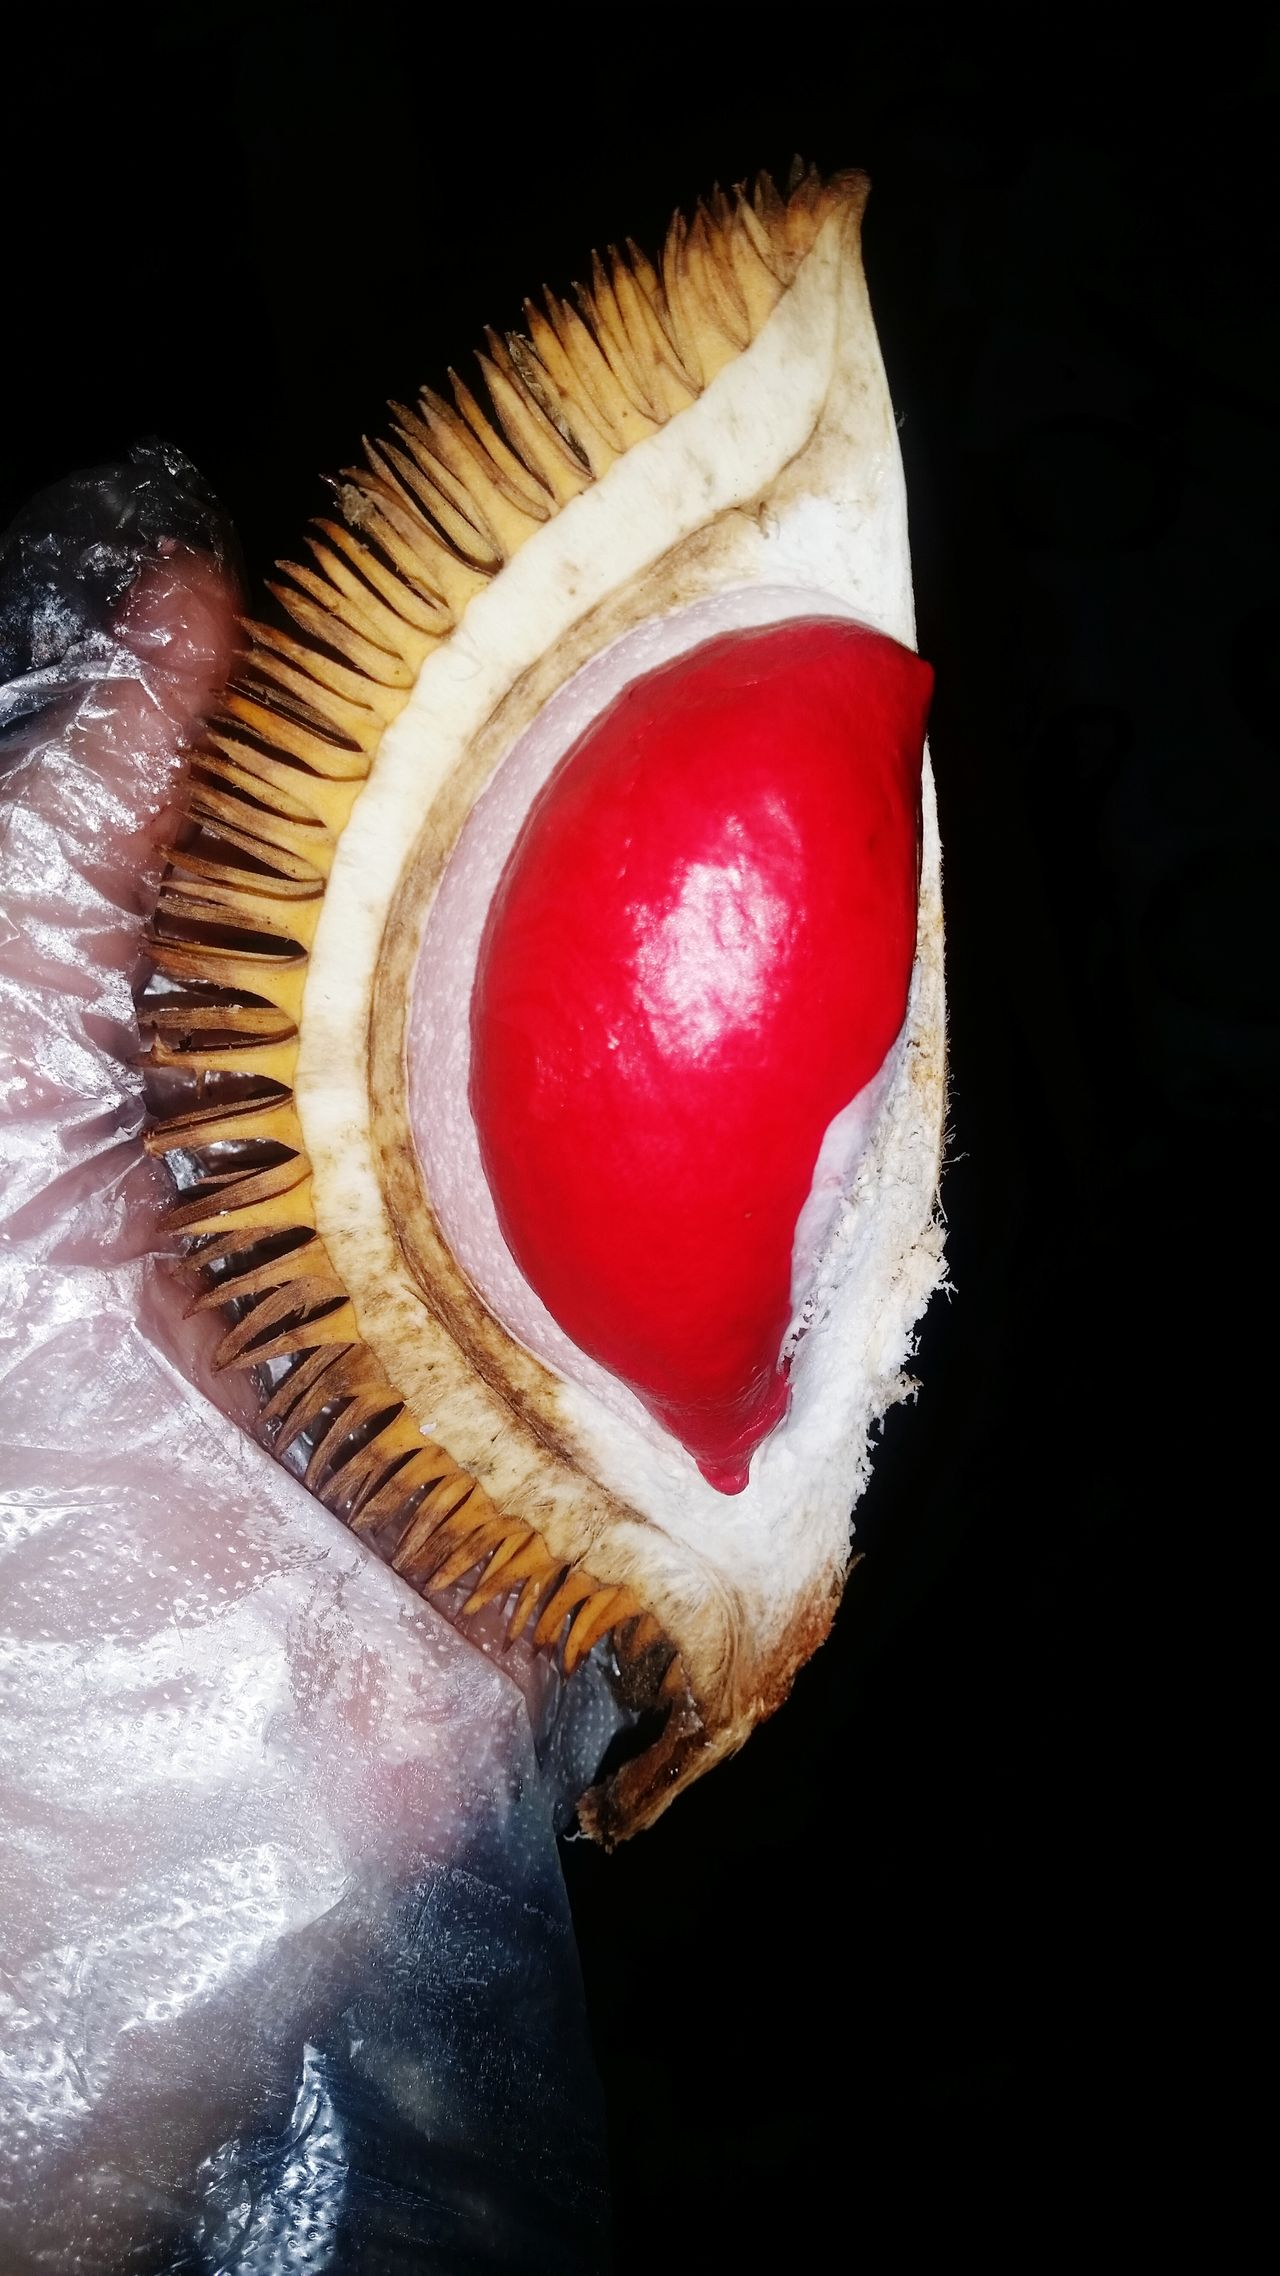 Durianmerah Alau Sabah Borneo Malaysia SabahanFood Durian Reddurian Red Tropical Fruits Rareitem Durianseasons Durian Fiesta EyeEm Best Shots - Nature Eye4photography  Coloroflife Colour Of Life Colour